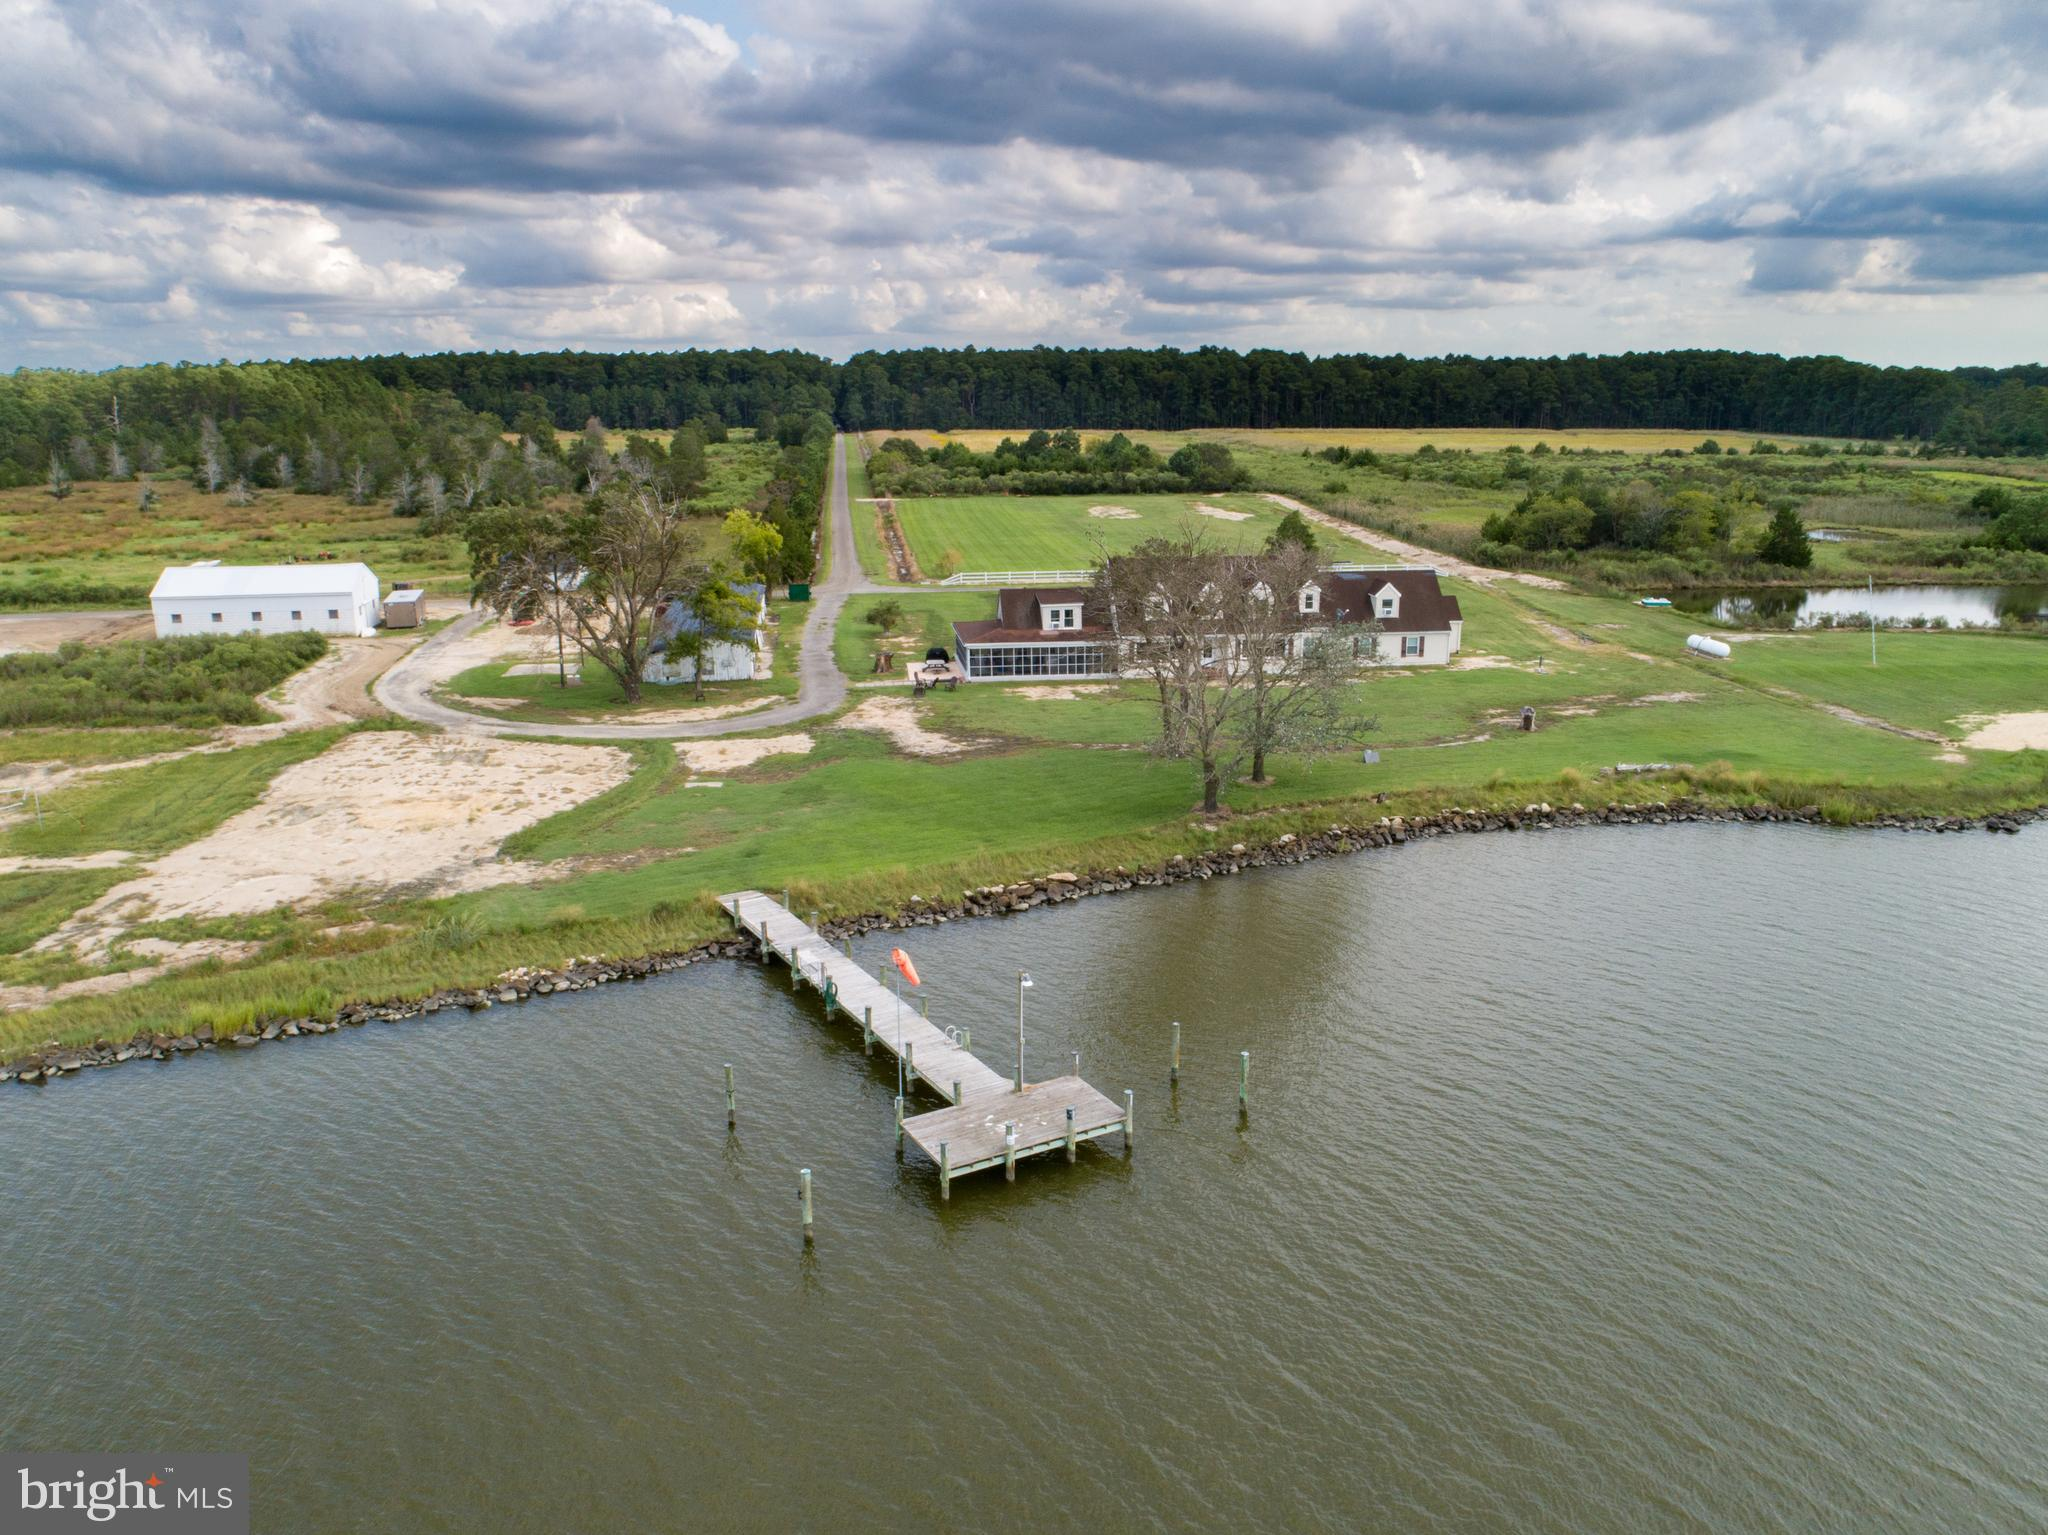 NEW PRICE!  THE SERIOUS OUTDOORSMAN/HUNTER OR NATURE ENTHUSIAST WILL LOVE THIS PRIVATE AND SECLUDED WATERFRONT SETTING ON  357 +/- ACRES.  8000 FT (approx 1.5 miles) OF WATER FRONTAGE ON THE LITTLE CHOPTANK & SMITH COVE WITH SPECTACULAR SUNSETS.  A GATED ENTRY  LEADS TO A PRIVATE TREE LINED  ONE MILE DRIVE OPENING TO FIELDS AND WATER.  BOATERS WILL ENJOY THE TWO MULTI SLIP PIERS, BOATHOUSE, AND  SANDY BEACH TO LAUNCH THEIR CANOES & KAYAKS.  THE 5 BR  RUSTIC FARMHOUSE WITH A WRAP AROUND PORCH  HAS HAD WINDOWS AND HVAC REPLACED. THE OVERSIZED GARAGE & OUTBUILDINGS ARE IDEAL FOR FARM/BOATING/HUNTING  EQUIPMENT & STORAGE.  THE MAIN HOUSE  SLEEPS 15+ & HAS AN ESTABLISHED HISTORY OF RENTAL INCOME +/- $2995 PER WEEK IN SUMMERTIME.  THE 2 BR 1 FULL BATH TENANT HOUSE (OR CARETAKERS HOUSE)  HAS A NEW ROOF (FEB 2020) & NEWER KITCHEN, DECK & SHED  OVERLOOKING THE WATER.  THREE LOTS. 7 MILES  AWAY FROM THE HYATT REGENCY (WITH CHAMPIONSHIP GOLF), SHOPPING, RESTAURANTS & THE BLACKWATER NATIONAL WILDLIFE REFUGE.  PLENTIFUL DEER (WHITETAIL & SIKA), BALD EAGLES, TURKEYS, FOXES, BIRDS, ETC.  SOME FIELDS CURRENTLY BEING FARMED (MILO & MILLET). SEE DISCLOSURES FOR SPECIFIC INFO REGARDING PROPERTY.  SELLER TO ACCOMPANY ALL SHOWINGS & WILL GIVE YOU THE TOUR ON THE MOTORIZED MULE!